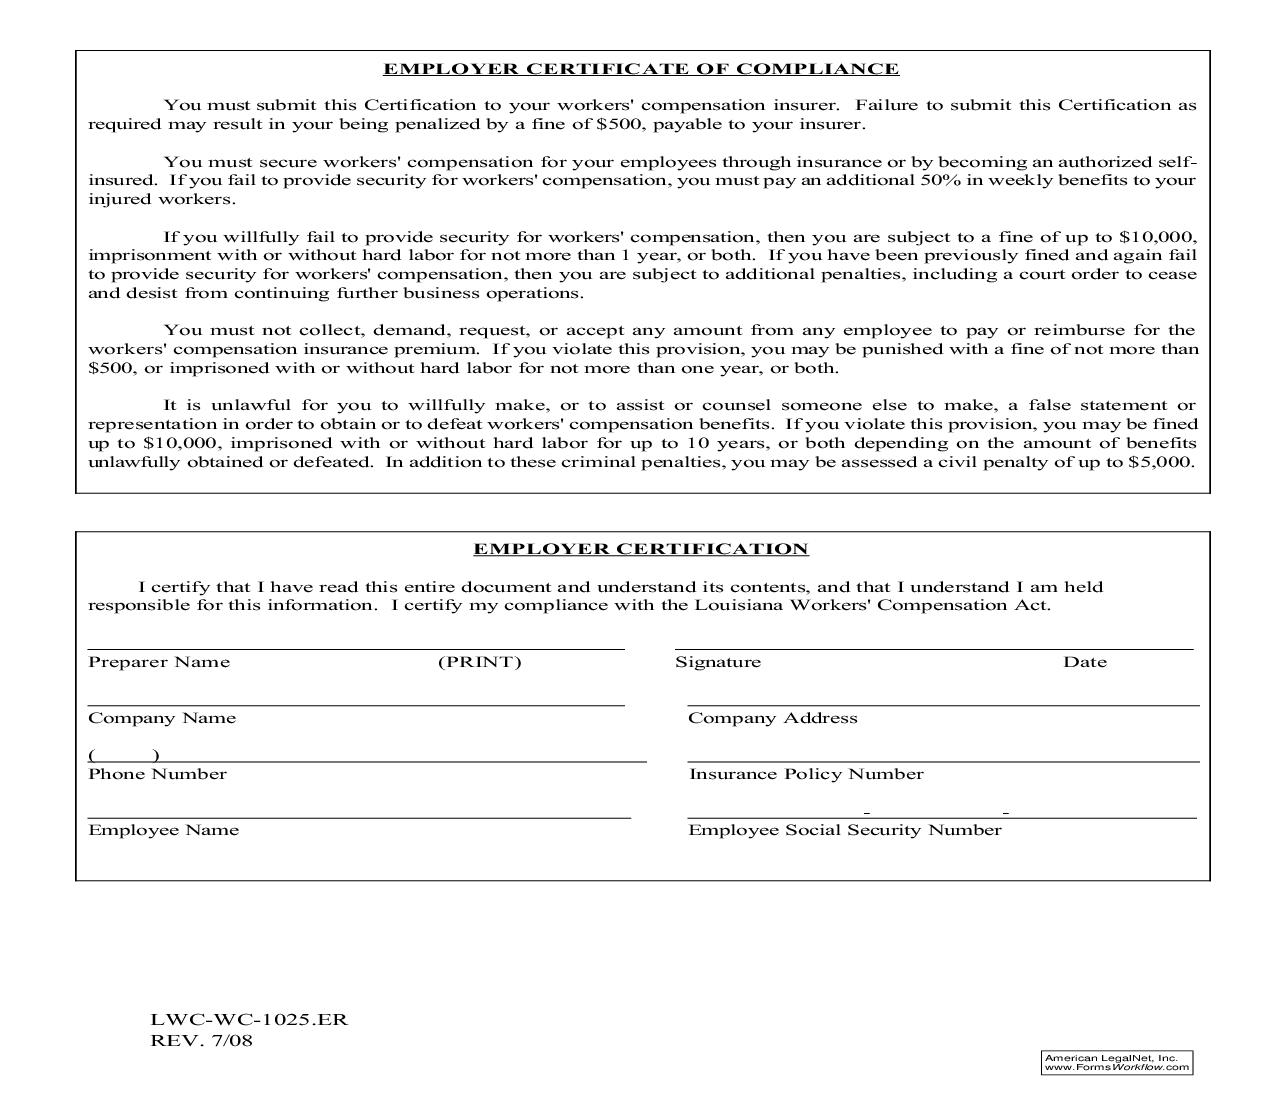 Employer Certificate Of Compliance {WC-1025.ER} | Pdf Fpdf Doc Docx | Louisiana